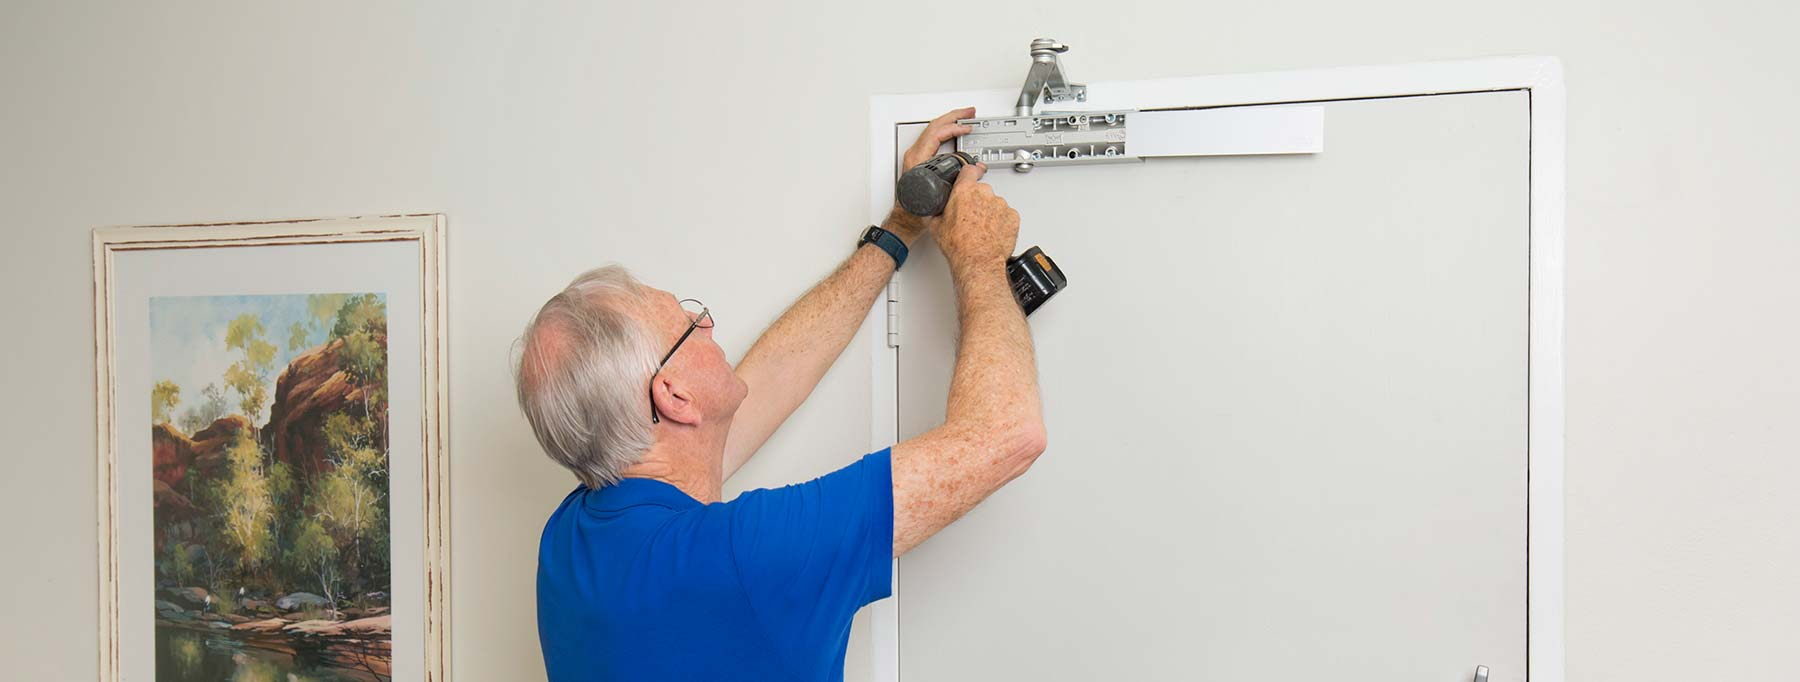 skilled tradesman and master locksmith